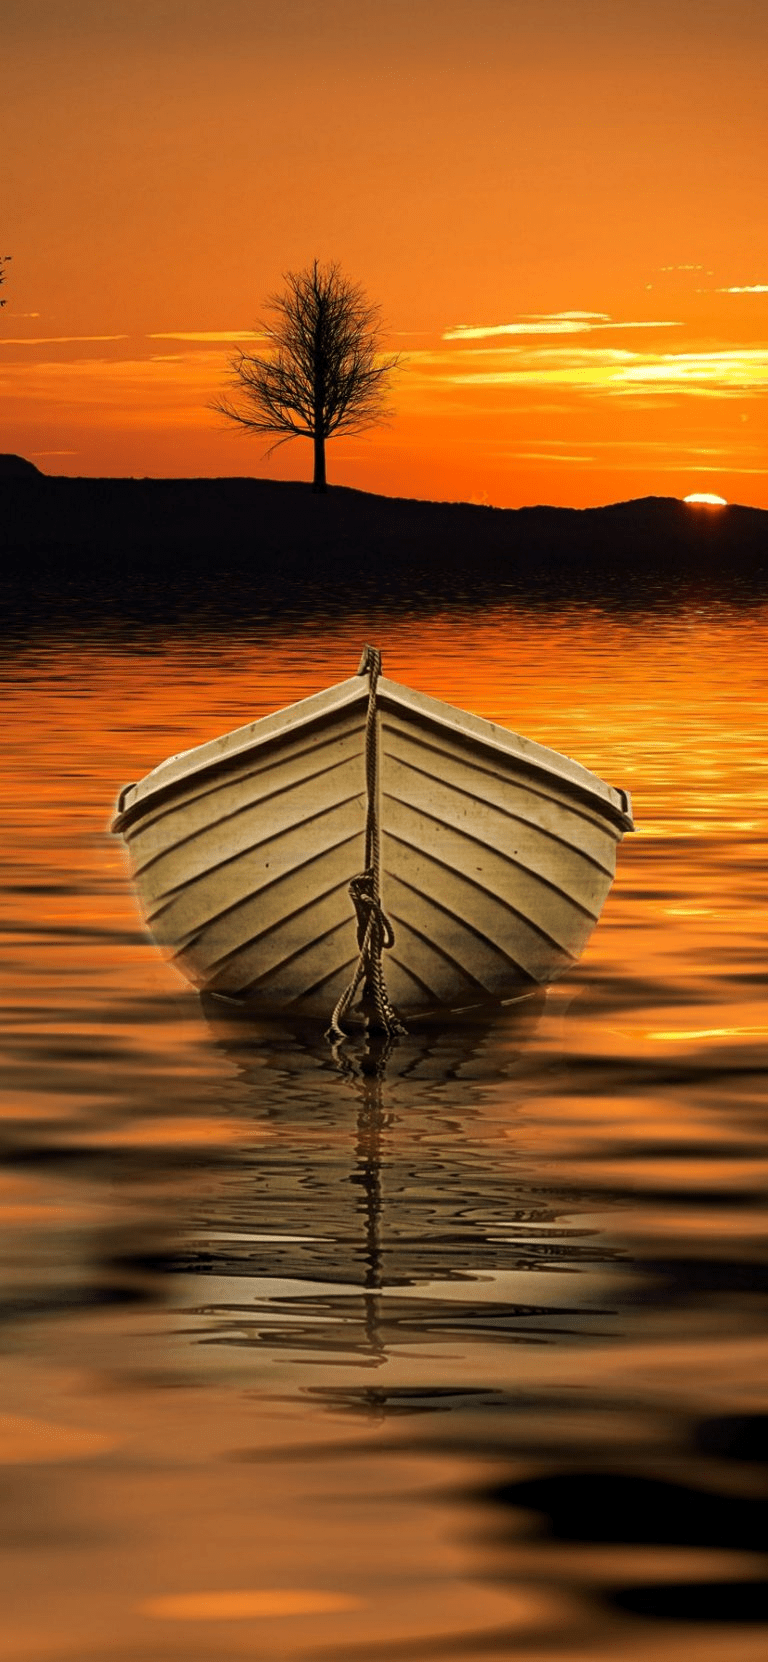 A Soulful Sail In A Boat, calming backgrounds